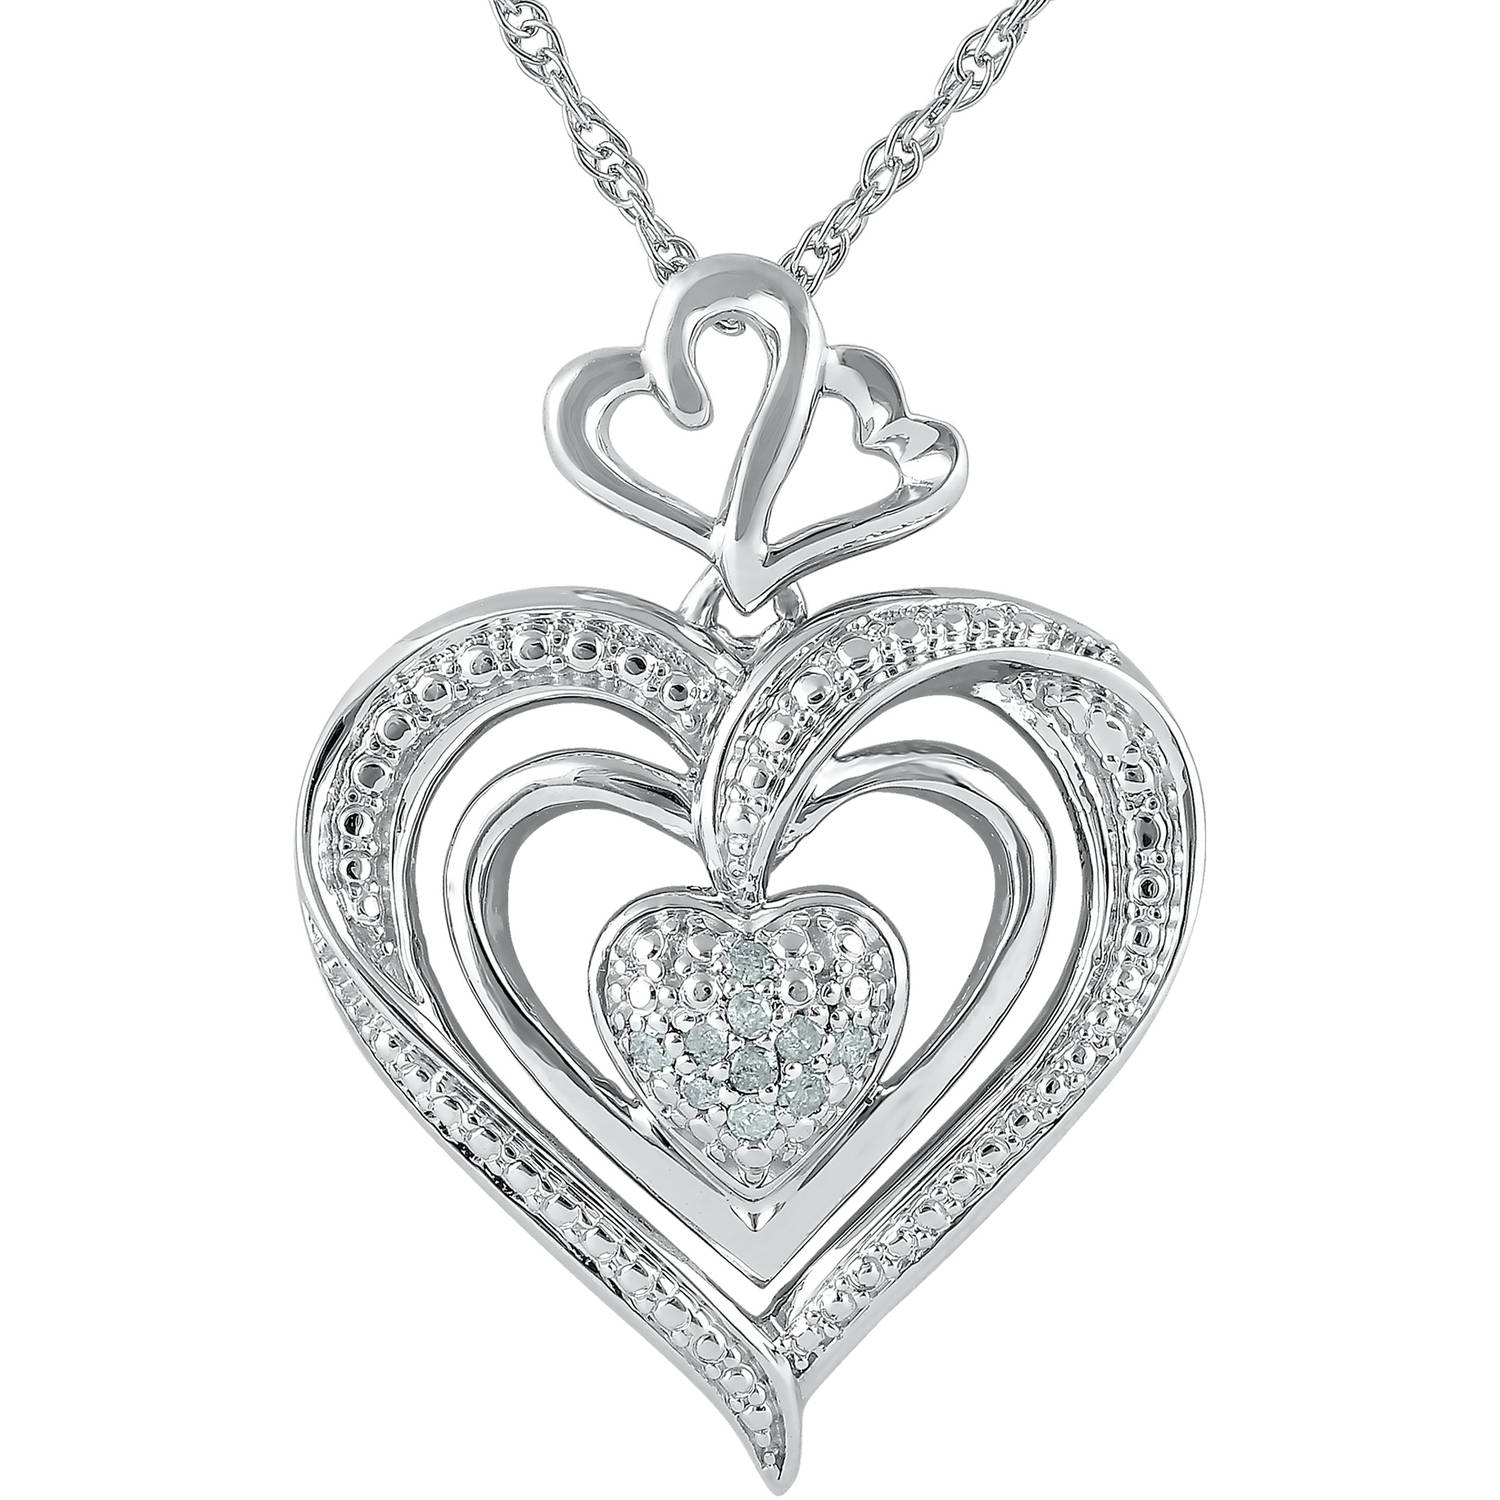 Heart 2 Heart 1/20 Carat T.W. Diamond Sterling Silver Double-Heart Pendant with Chain, 18""